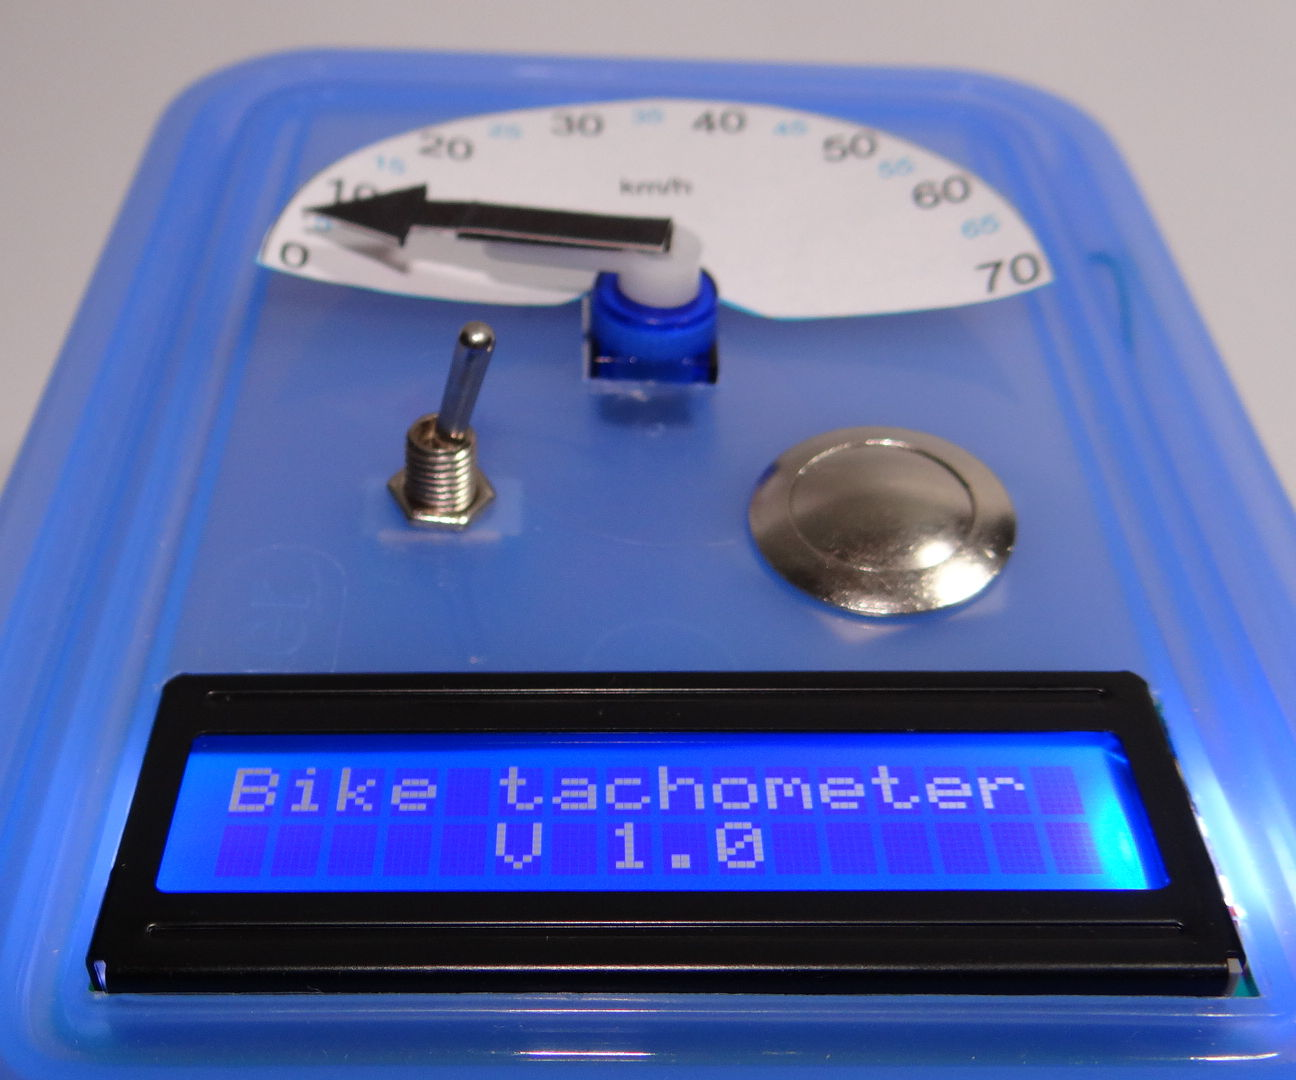 DIY bike tachometer